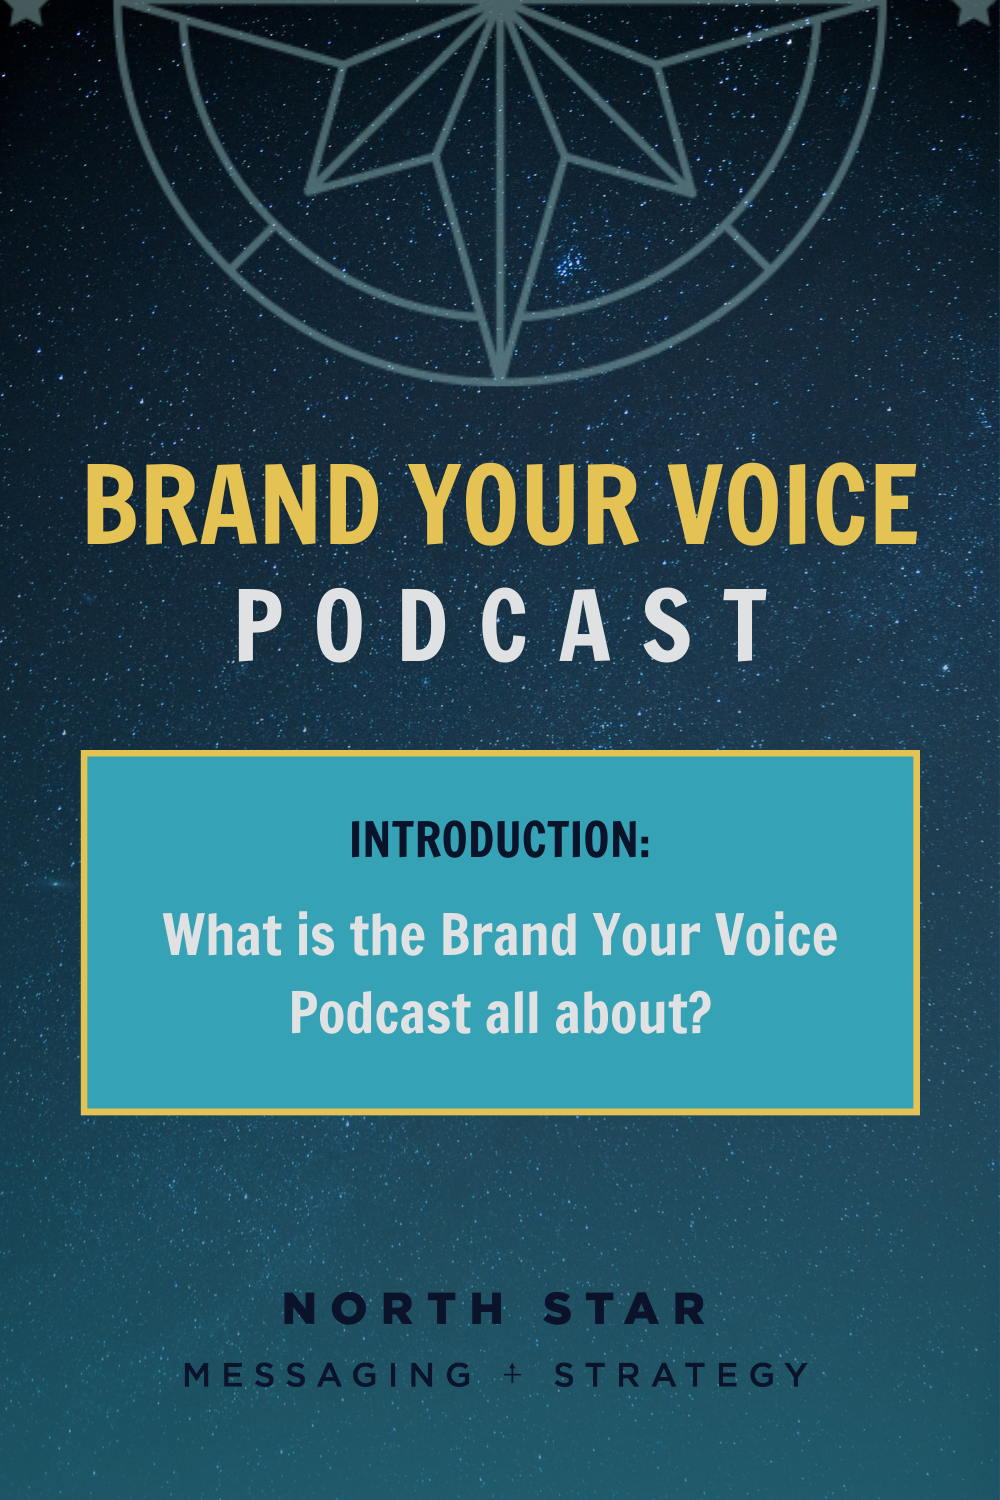 Introduction: What is the Brand Your Voice Podcast all about?